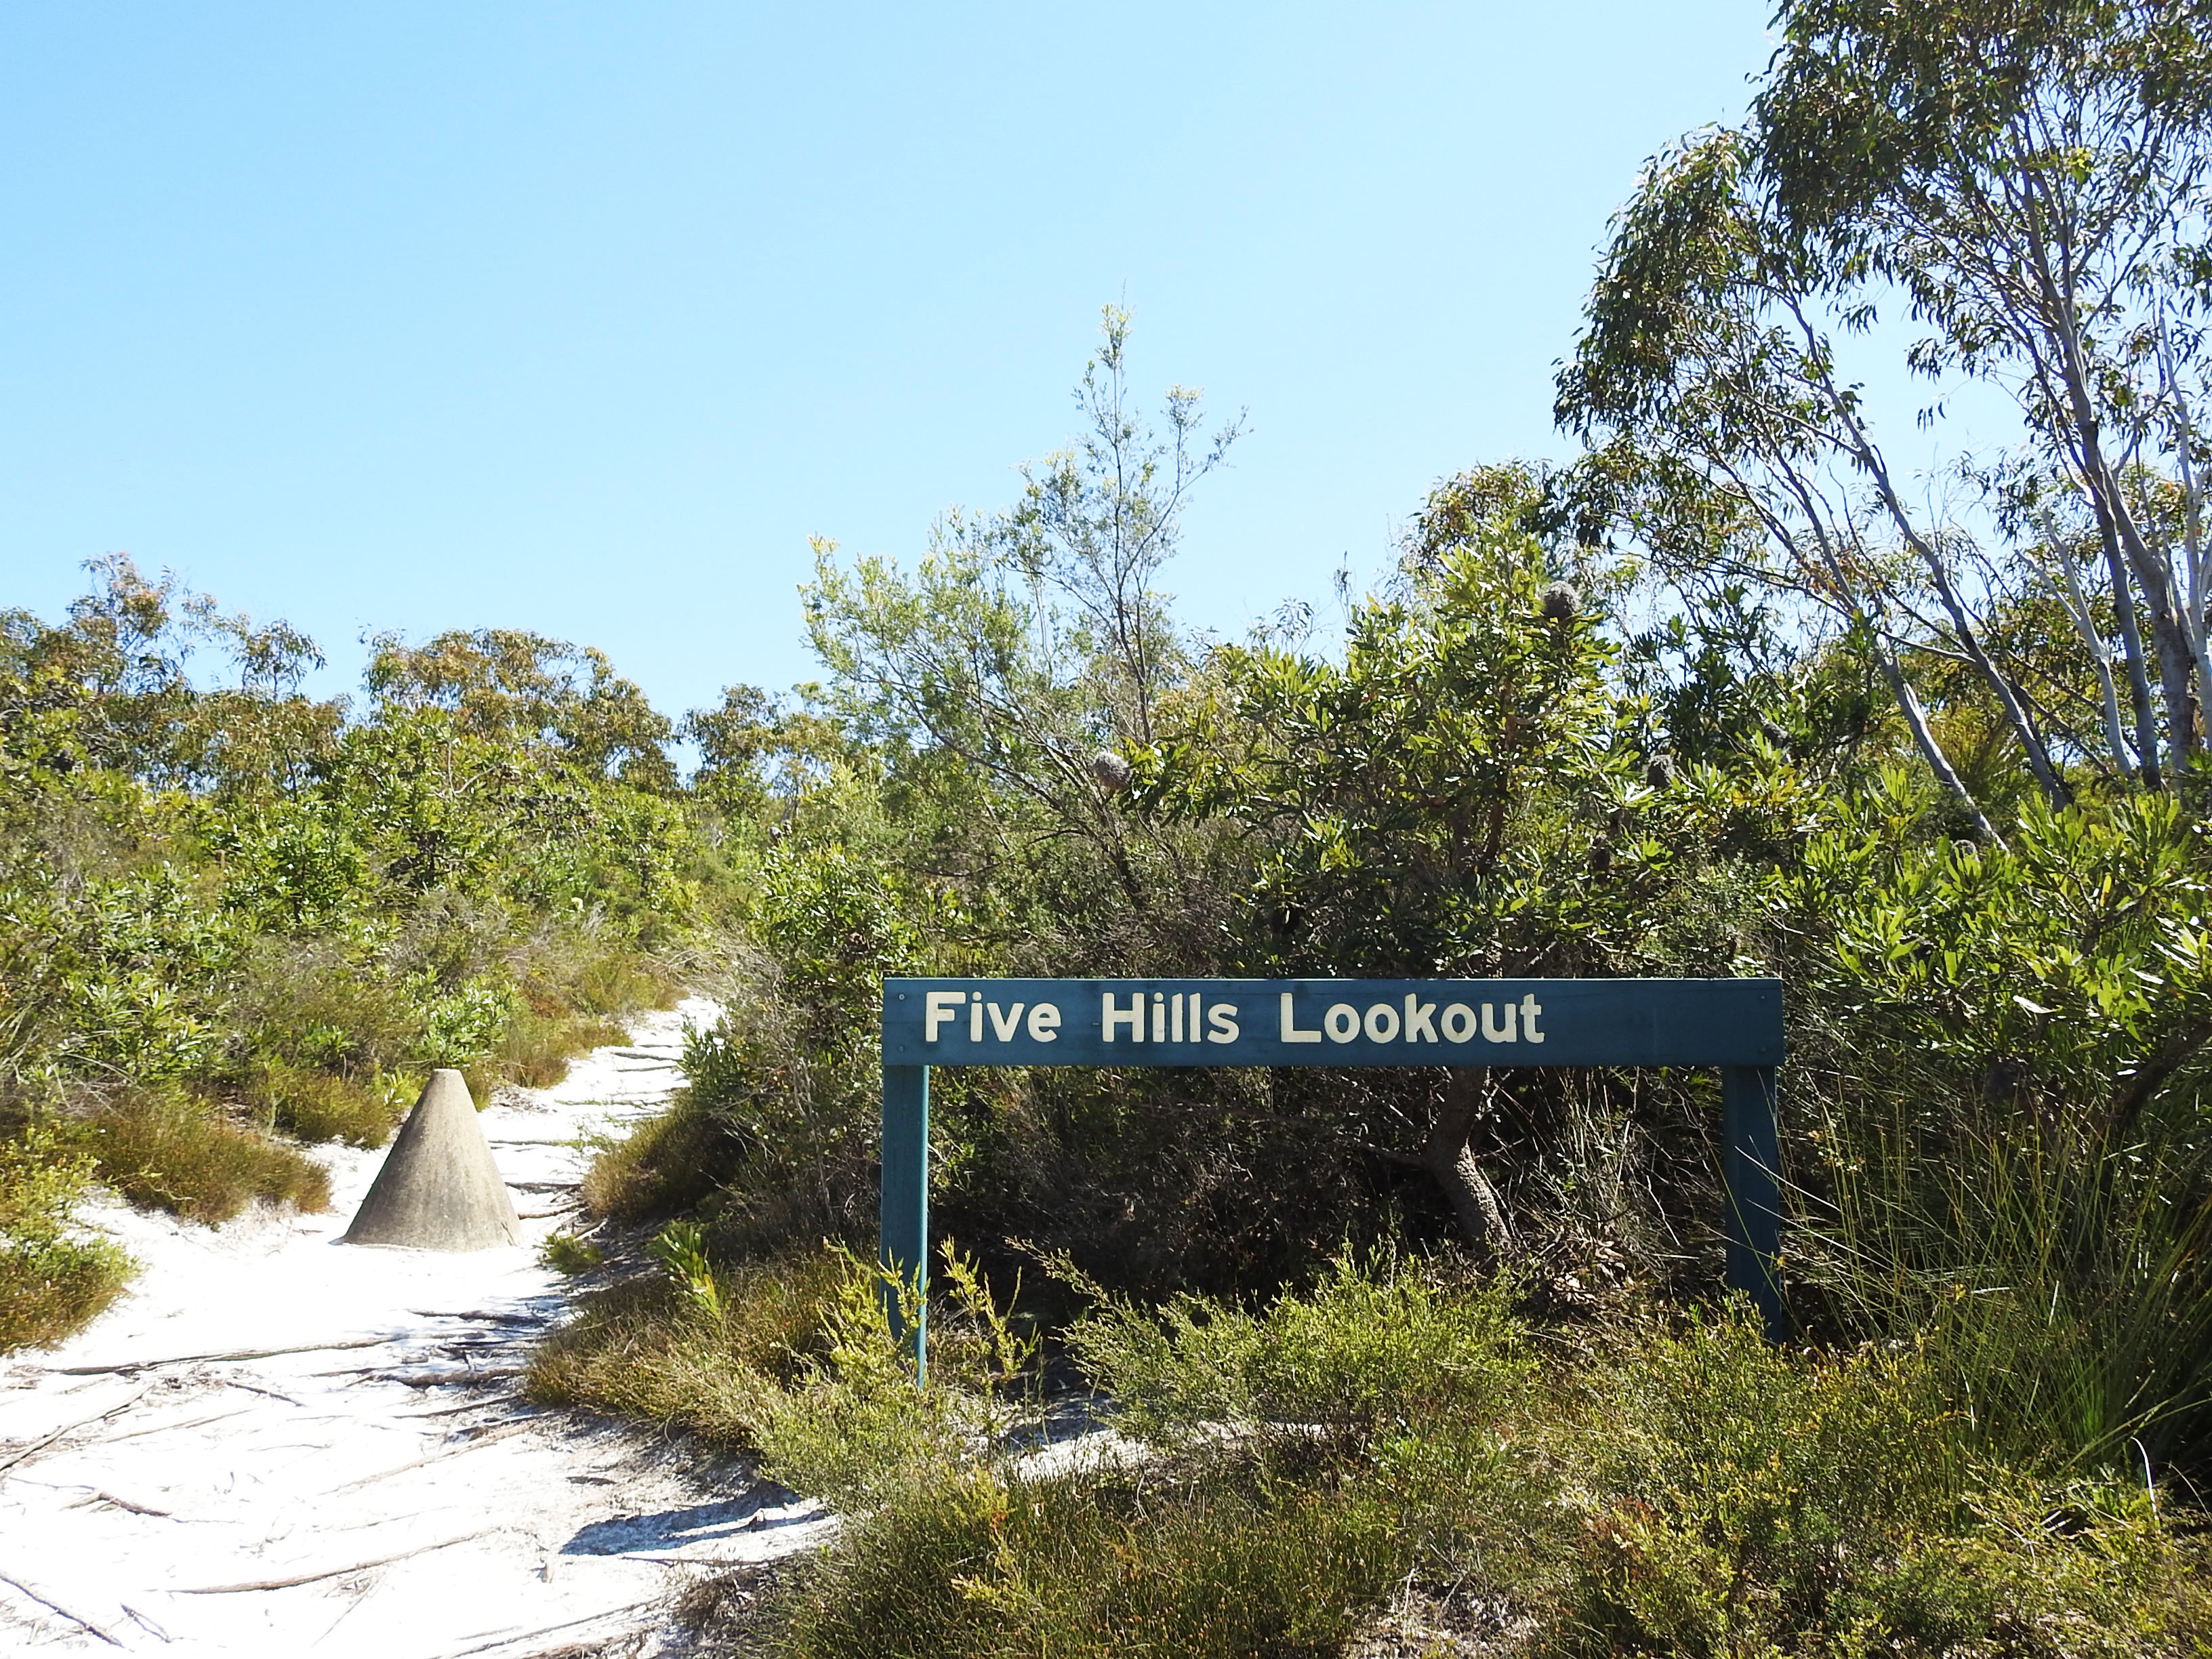 Five Hills Lookout